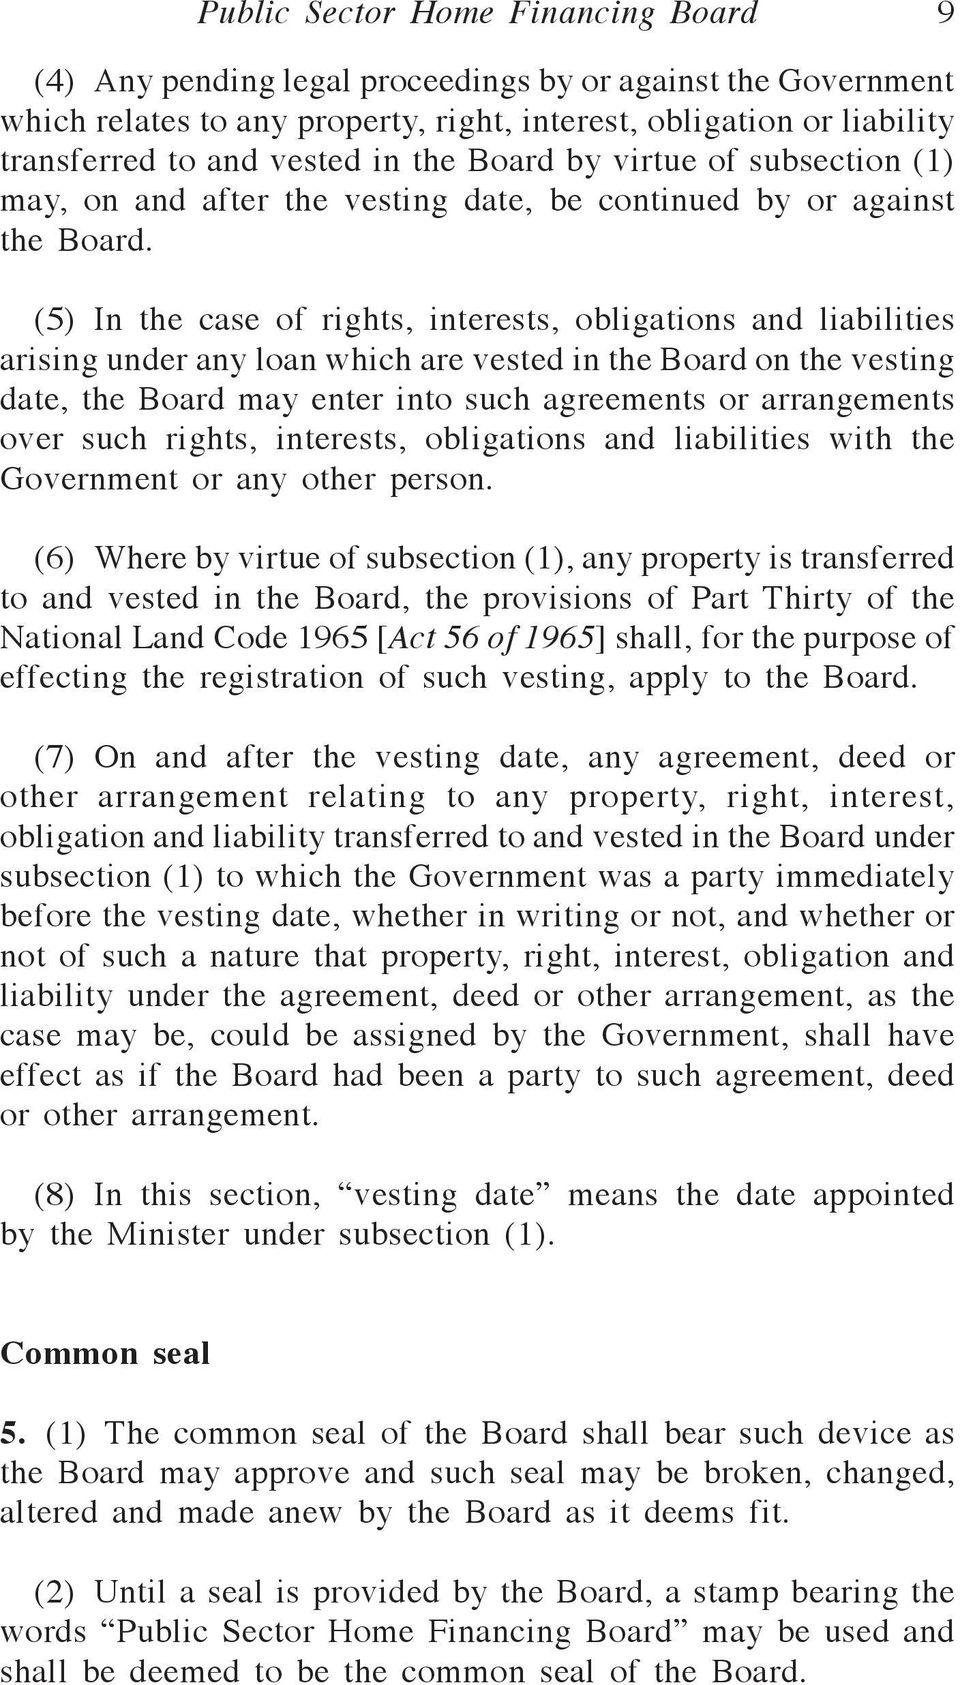 (5) In the case of rights, interests, obligations and liabilities arising under any loan which are vested in the Board on the vesting date, the Board may enter into such agreements or arrangements